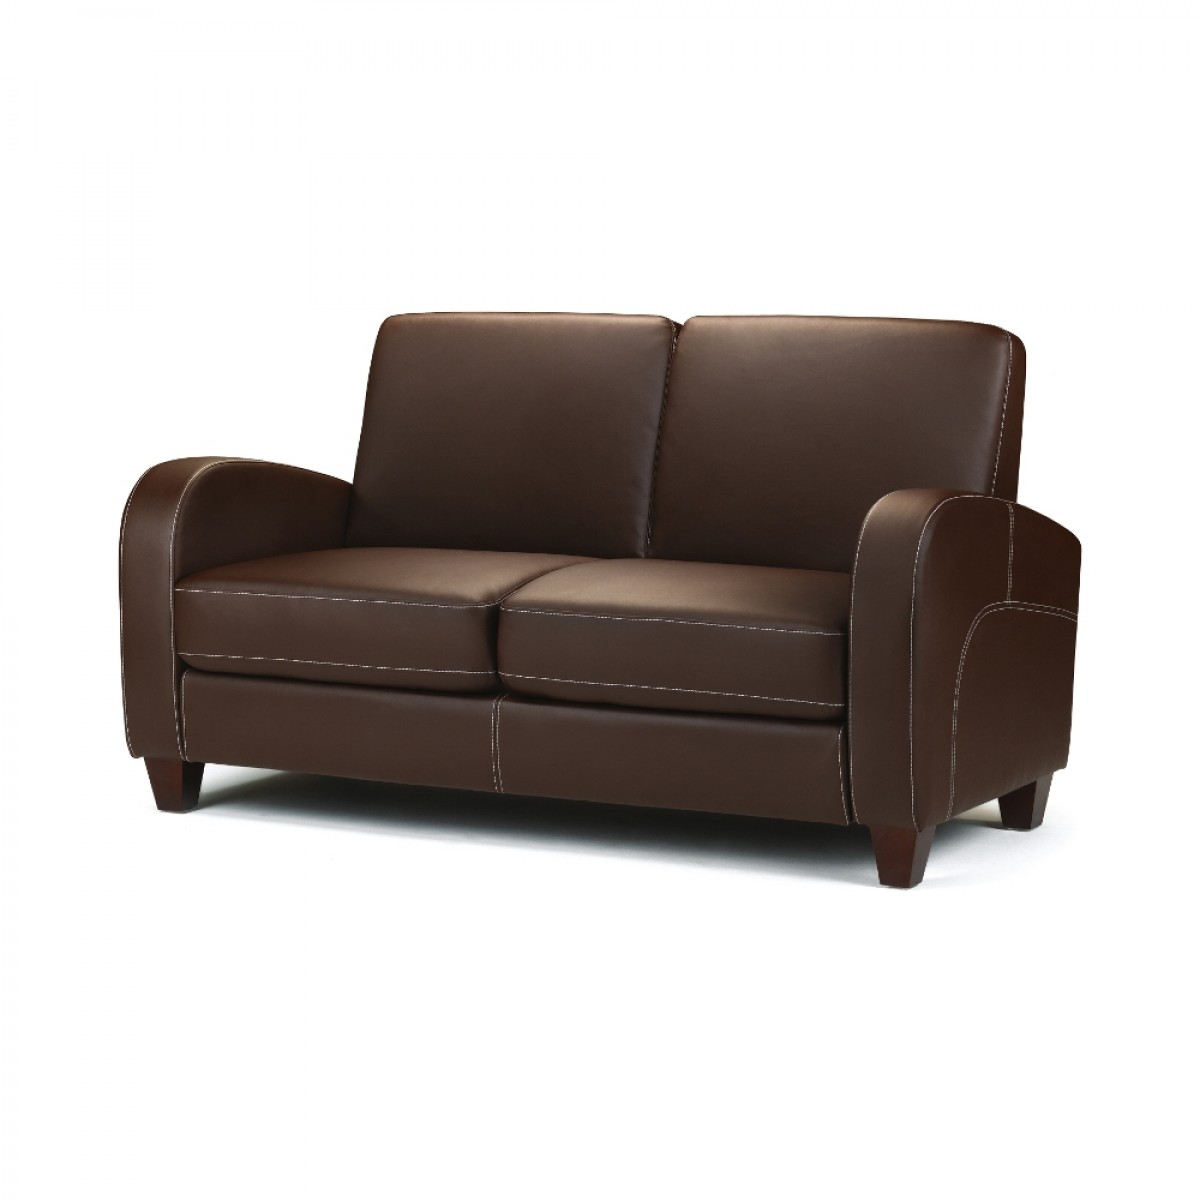 2 Seater Leather Sofa Brown: Vivo Brown Faux Leather 2 Seater Sofa